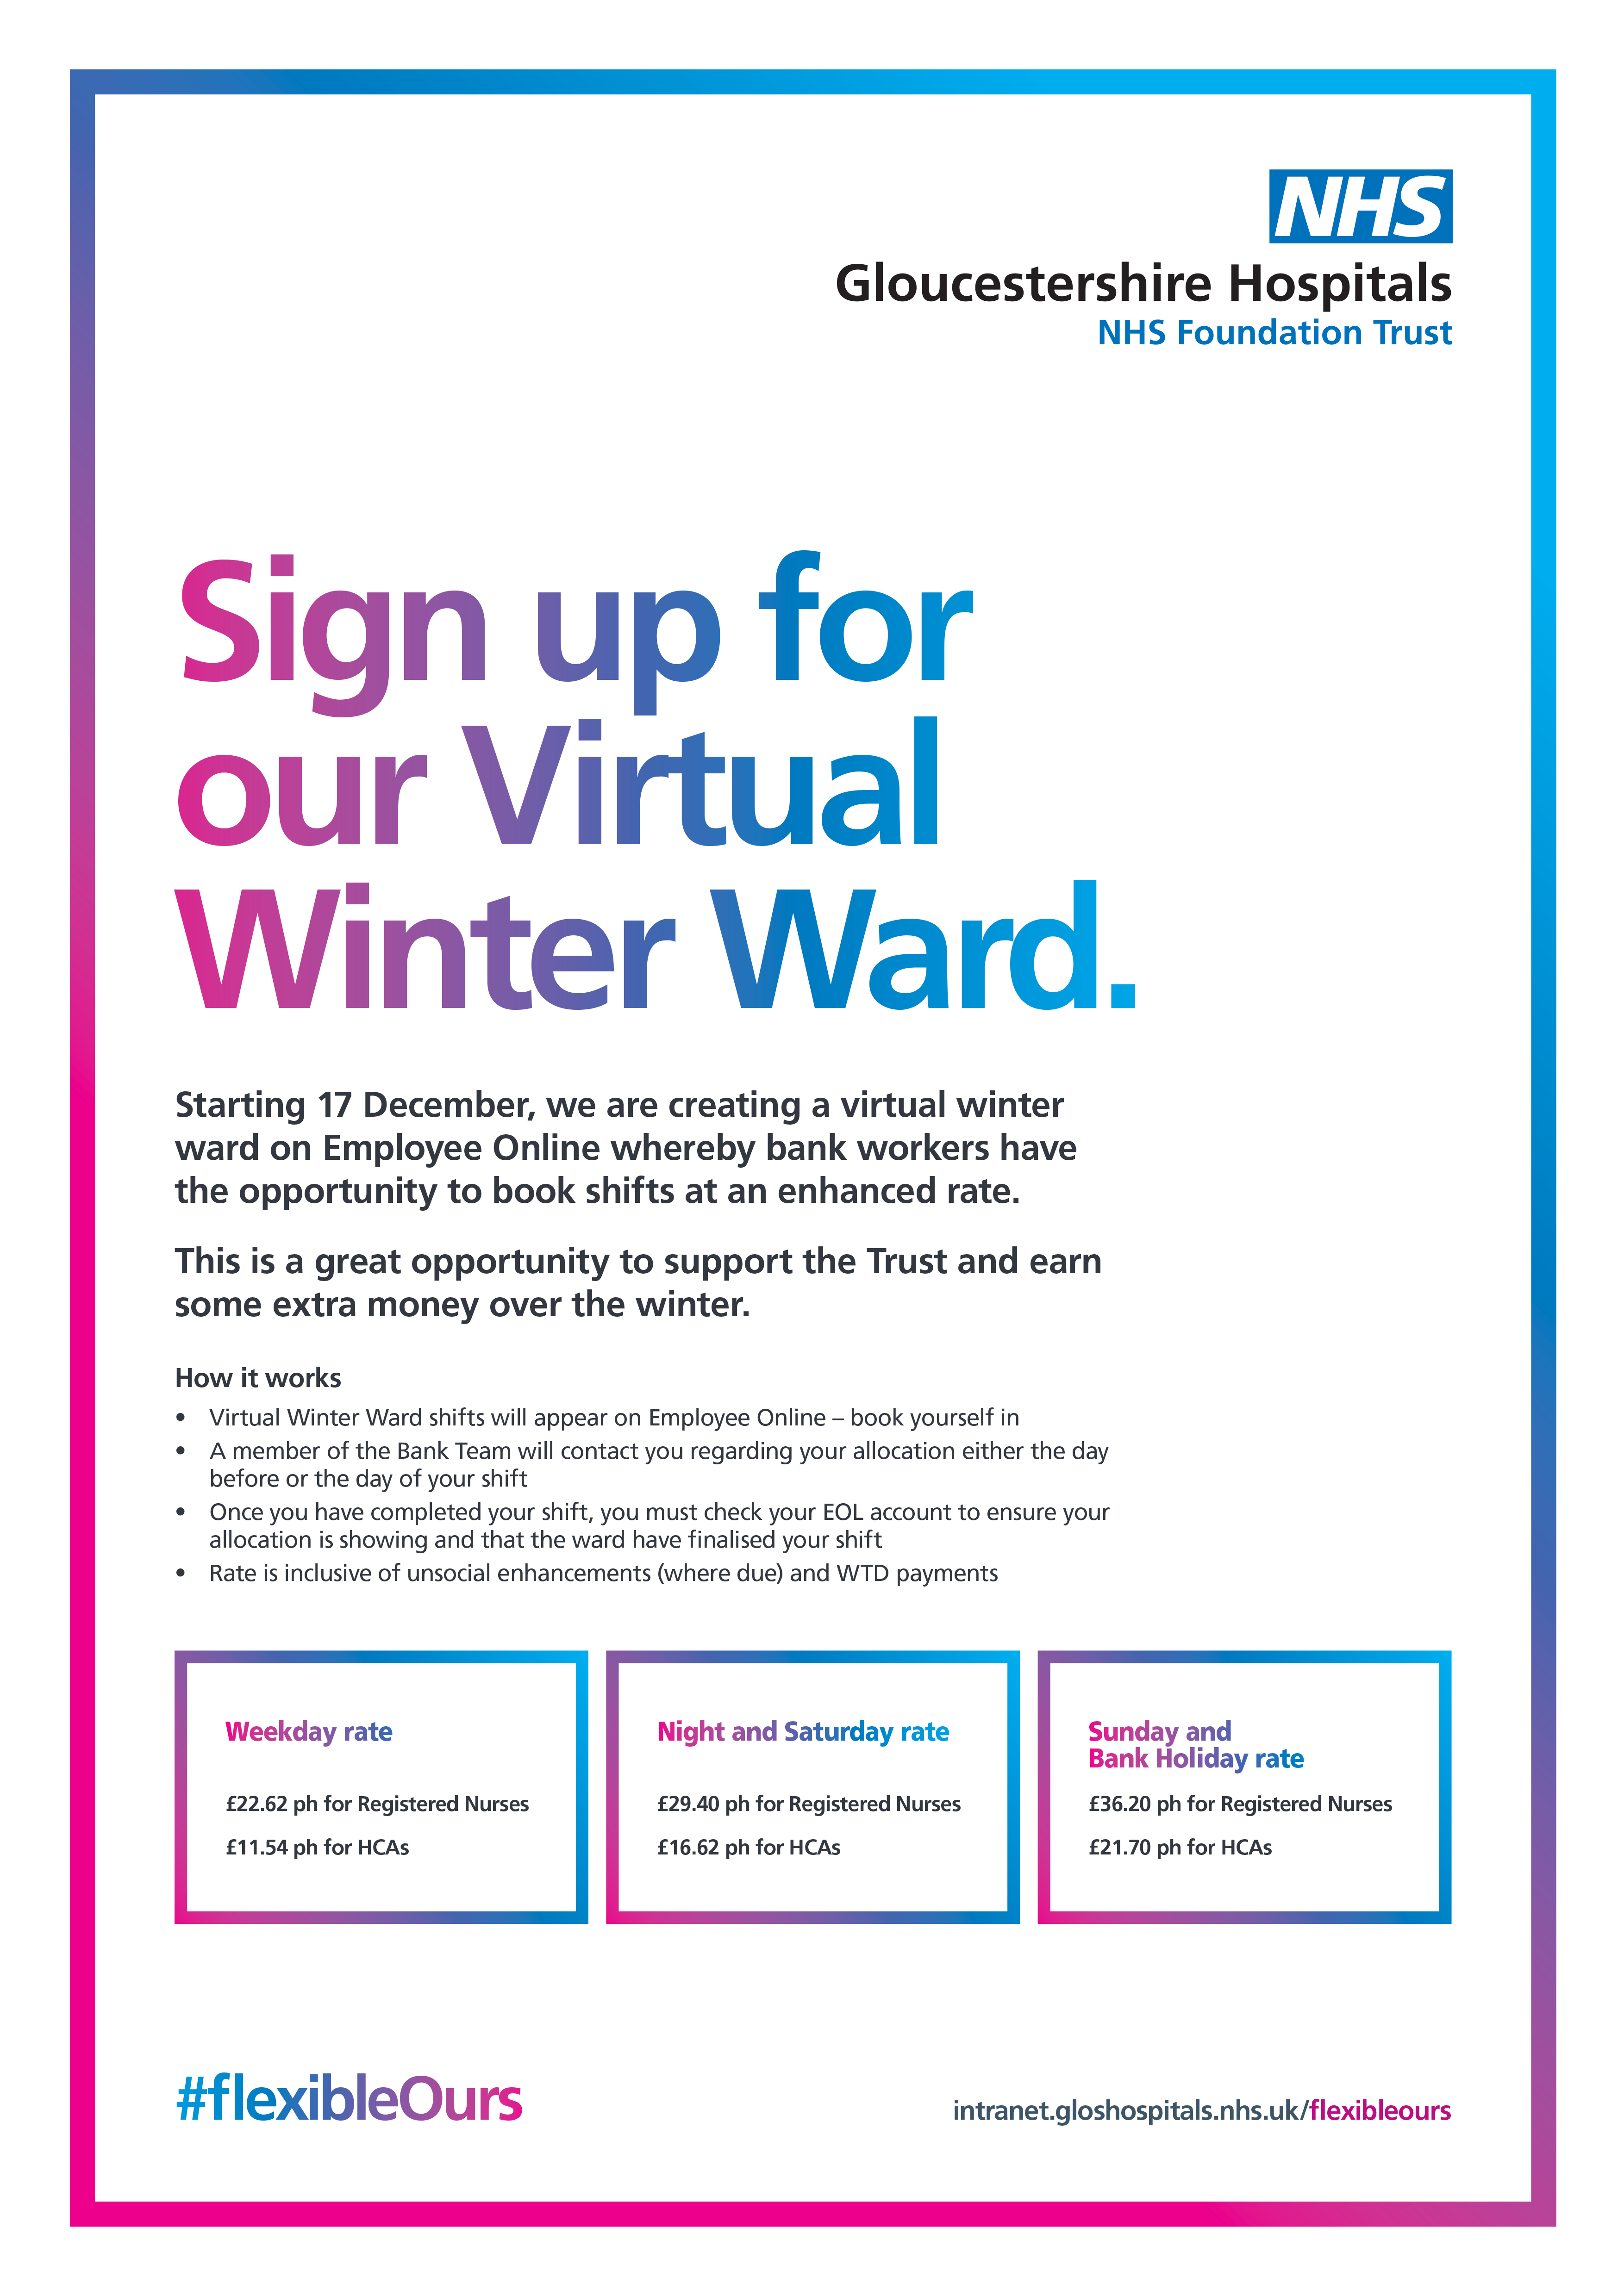 Sign up for our virtual winter ward!